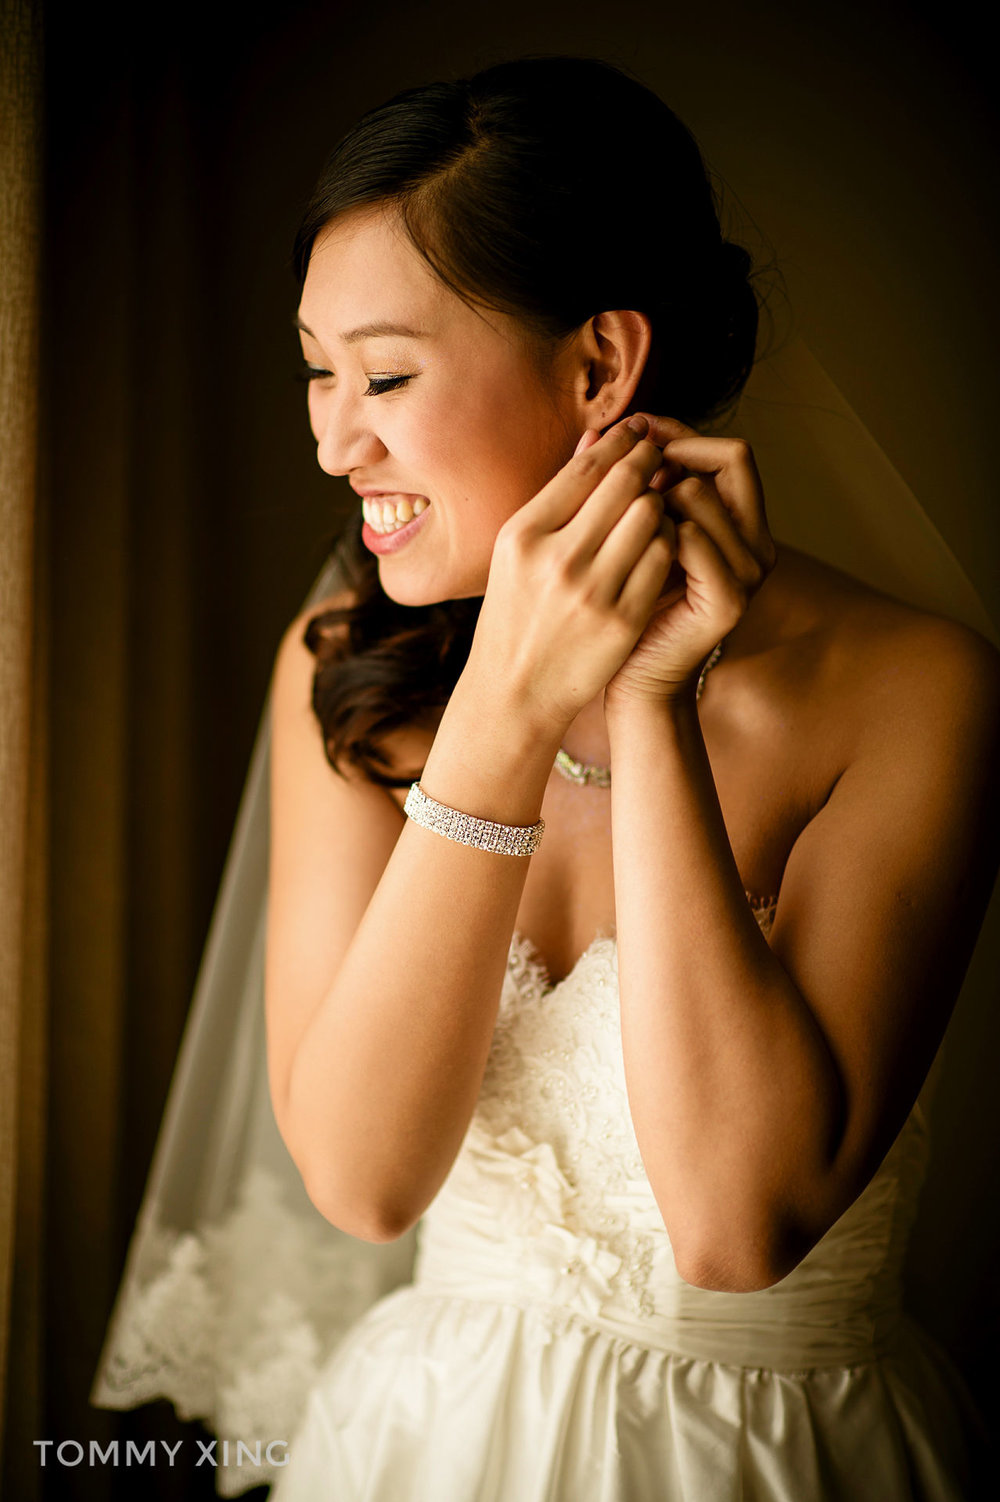 洛杉矶婚礼婚纱摄影师-TOMMY XING-LOS ANGELES WEDDING PHOTOGRAPHER-33.jpg